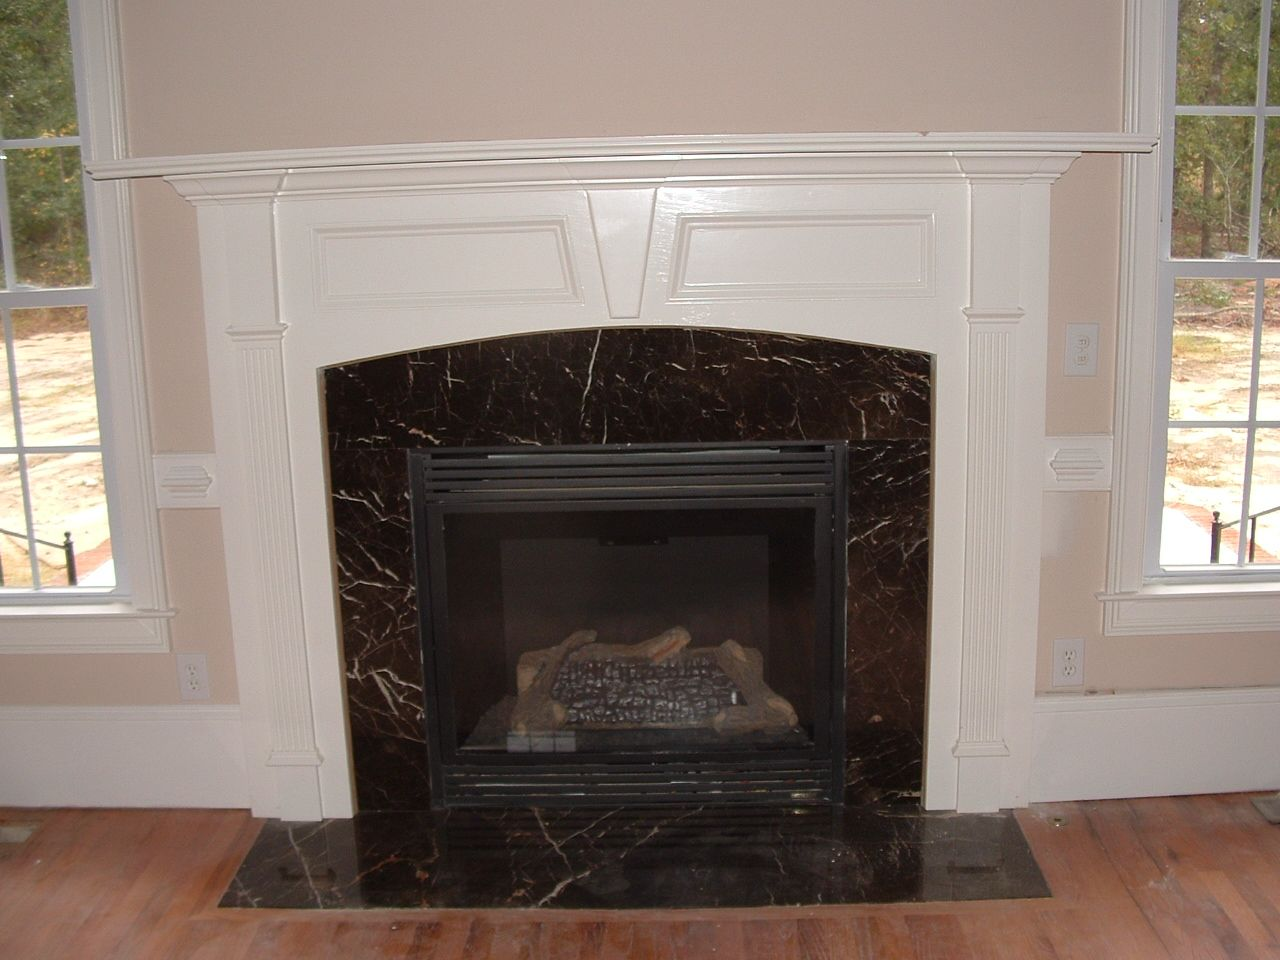 Fireplace Surround Design Ideas hot fireplace surround design ideas Classic Black Marble Fireplace Mantel Designs Ideas Inspiration Combined With White Concrete Material In Minimalist Traditional Interior Room Decor